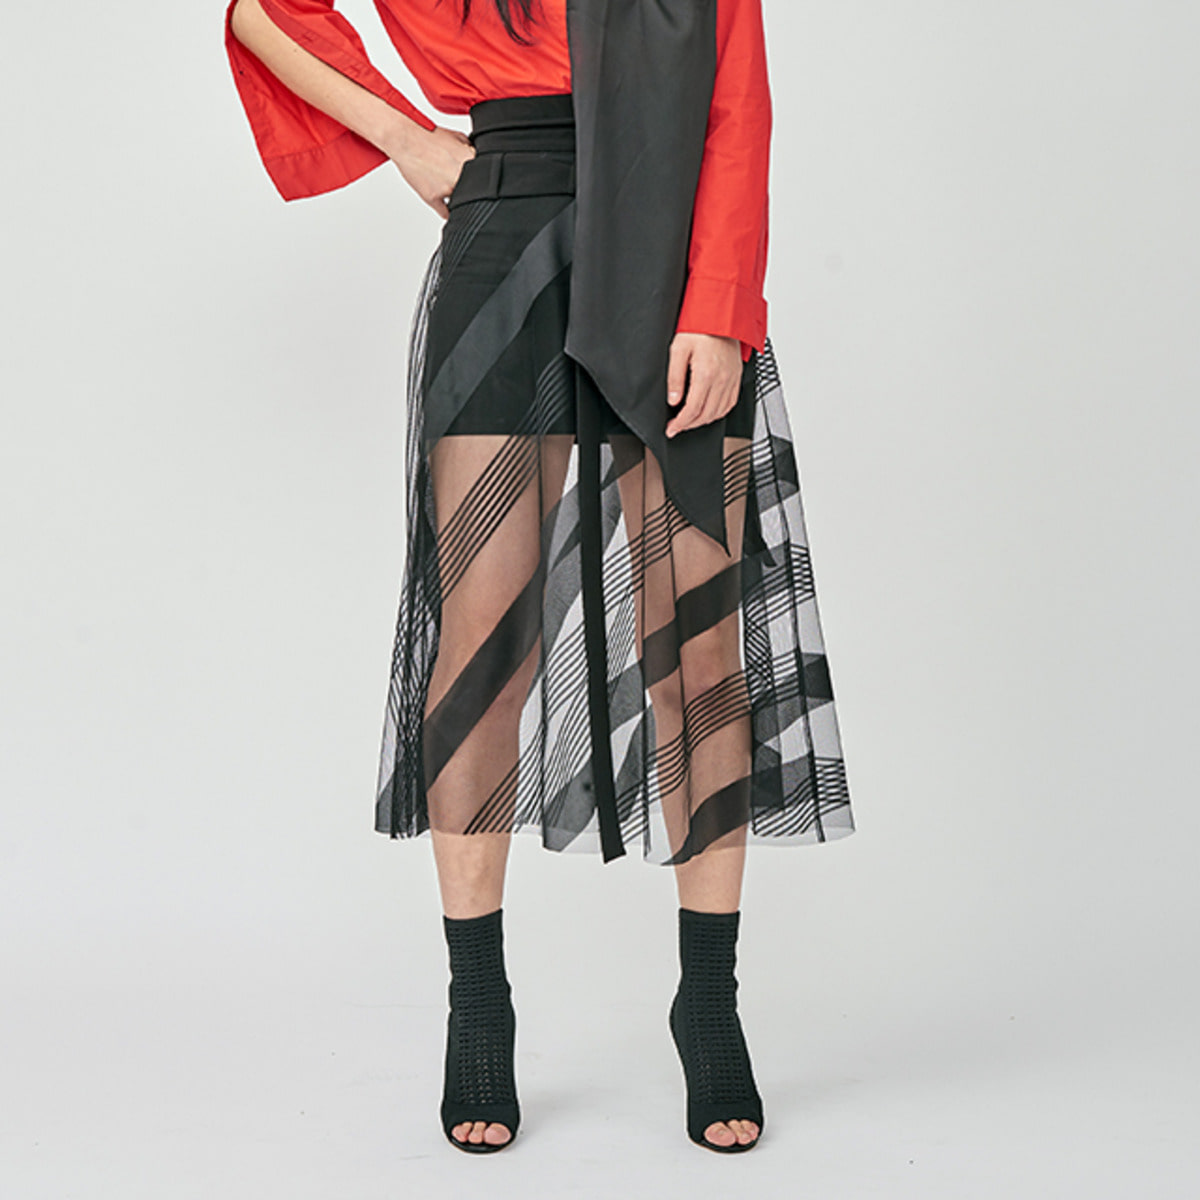 DIAGONAL COMBINED SKIRTS